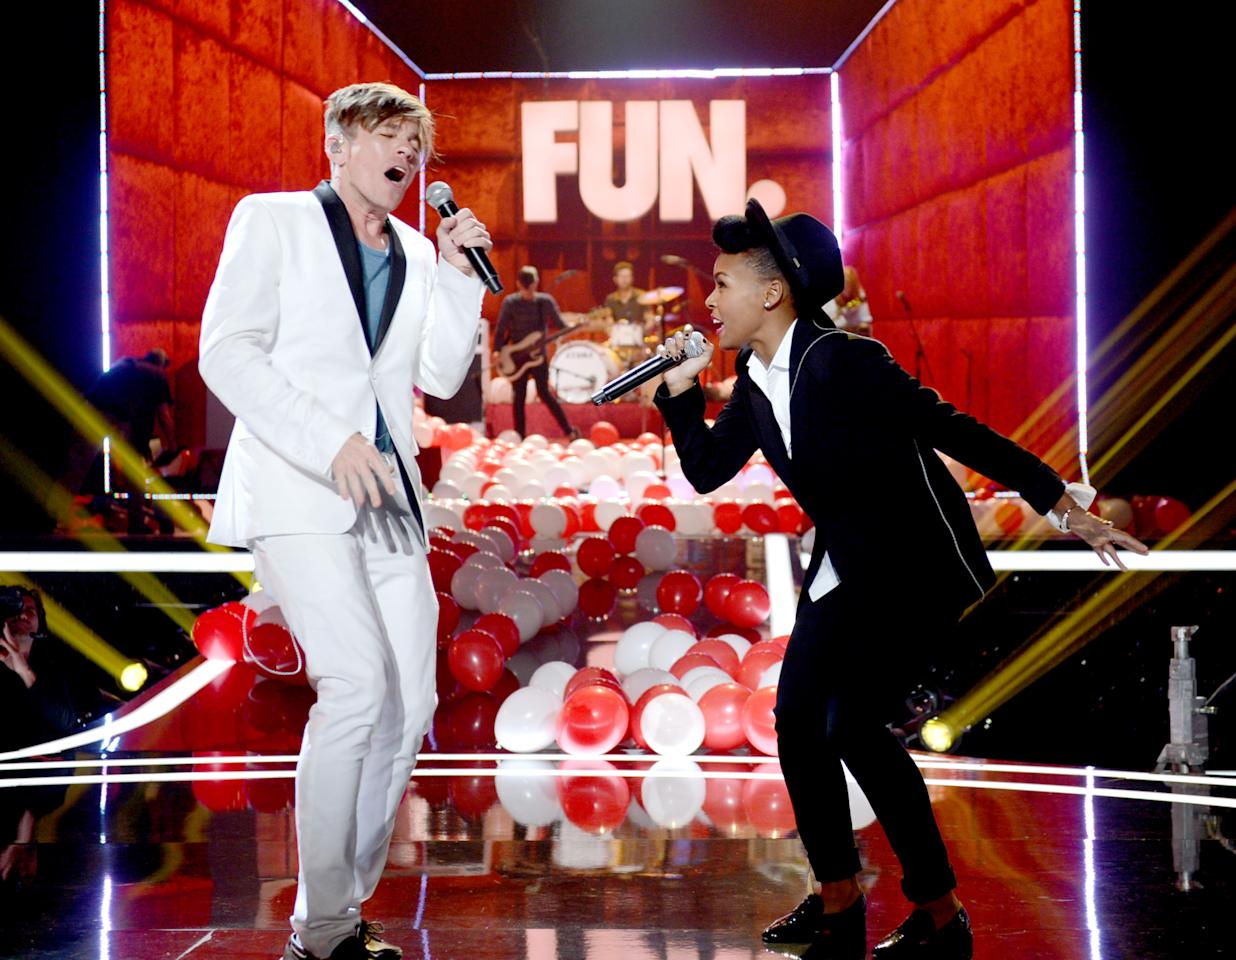 UNIVERSAL CITY, CA - JUNE 01:  Singer Nate Ruess of Fun (L) and singer Janelle Monae perform at rehearsals for the 2012 MTV Movie Awards on June 1, 2012 in Universal City, California.  (Photo by Kevin Winter/Getty Images)